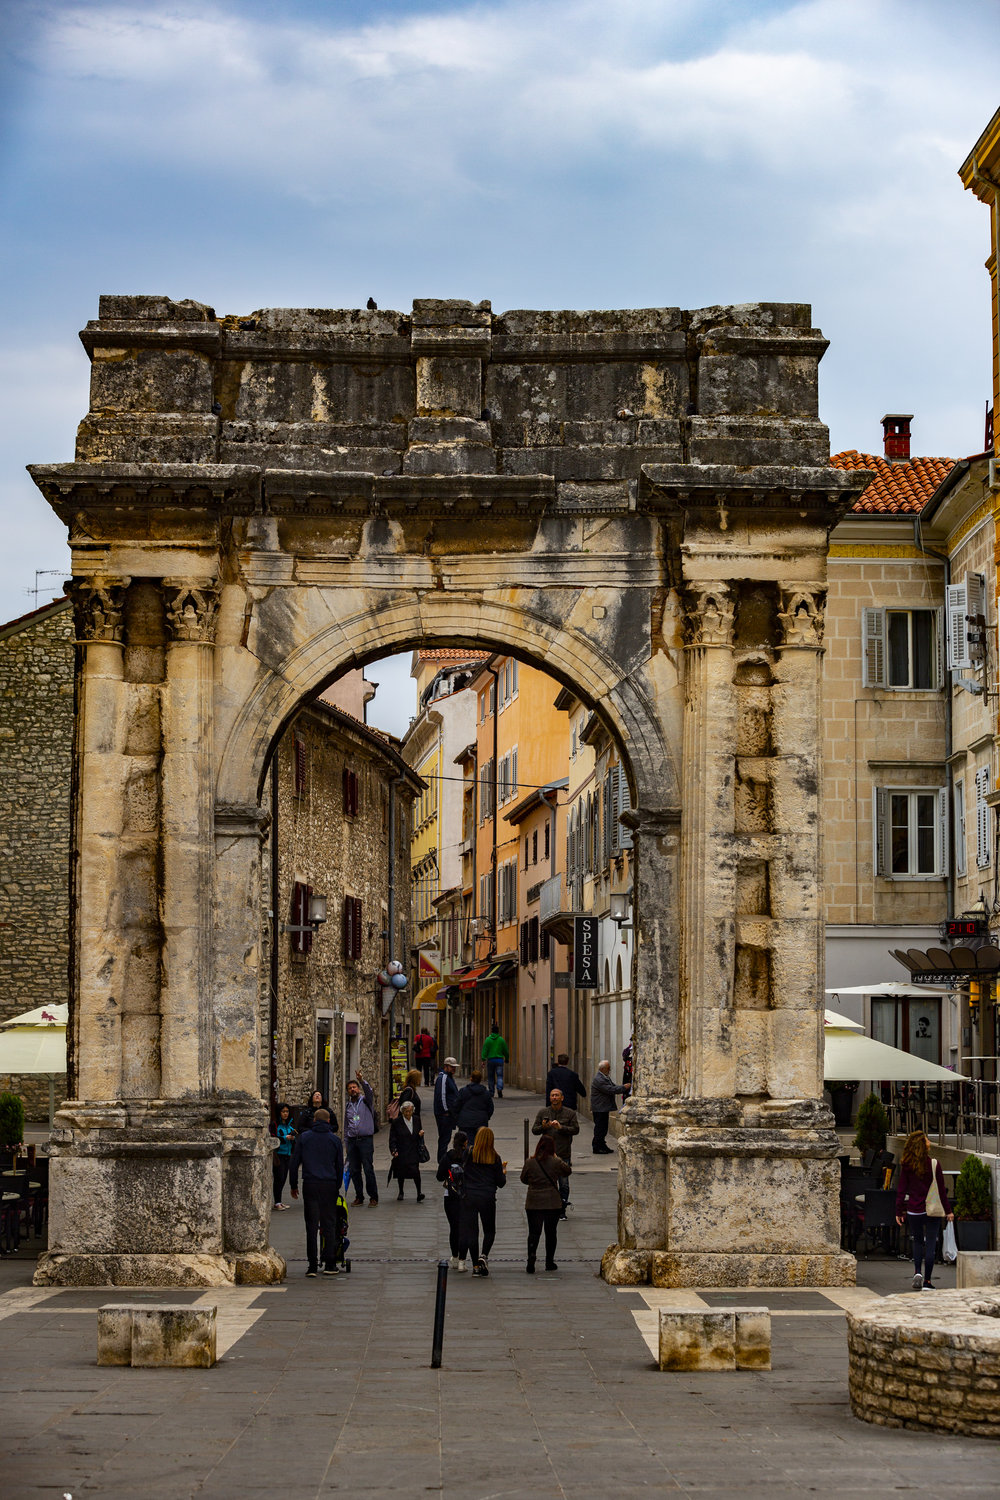 Arch of the Sergii's in Pula town